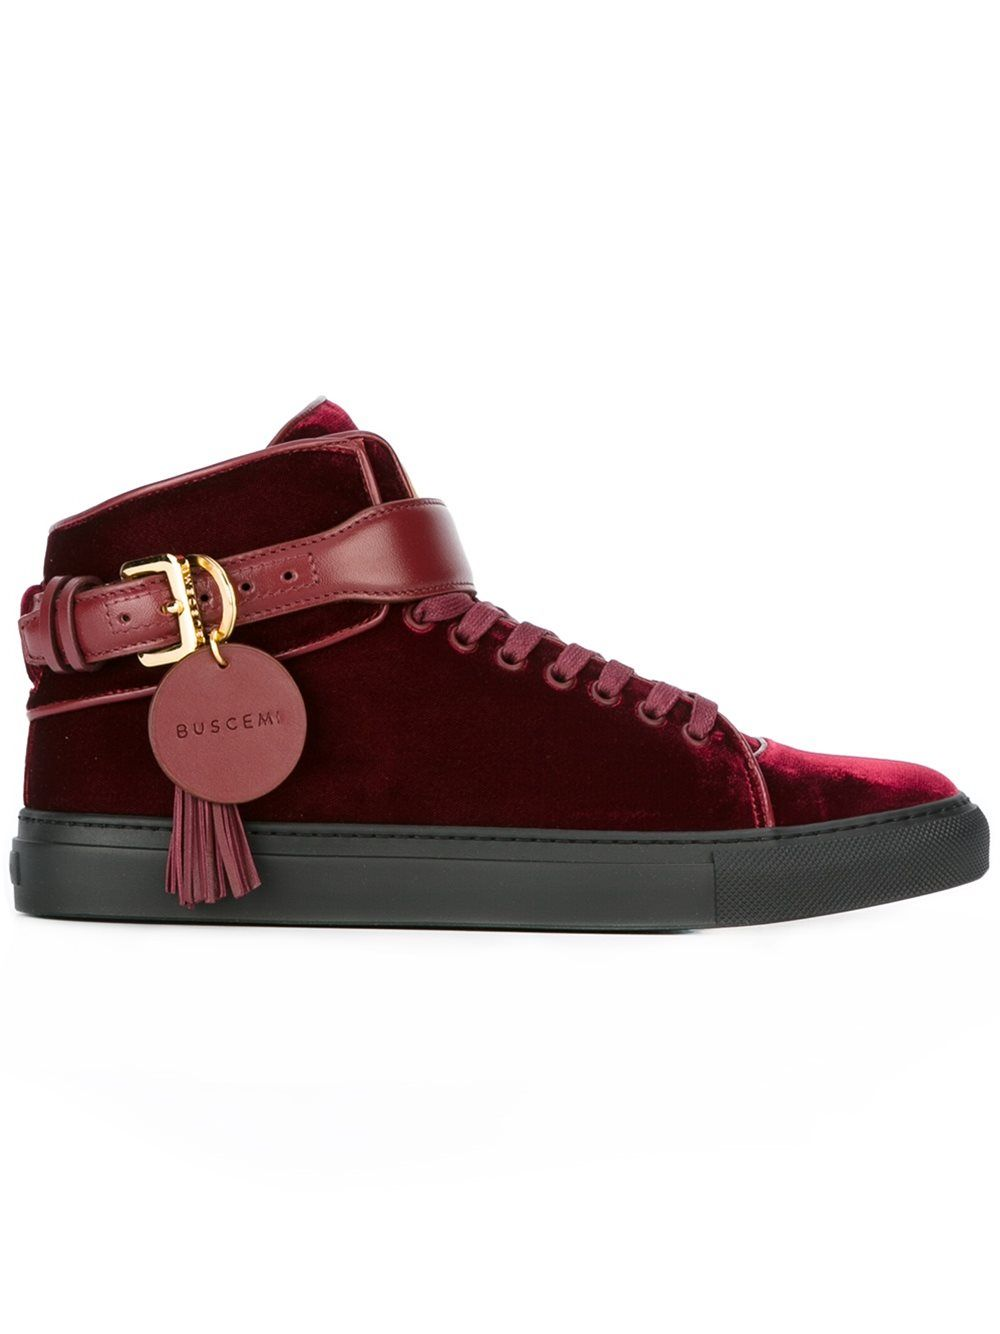 Buscemi Woman Studded Fringed Leather High-top Sneakers Burgundy Size 35 Buscemi ez4JR7mK